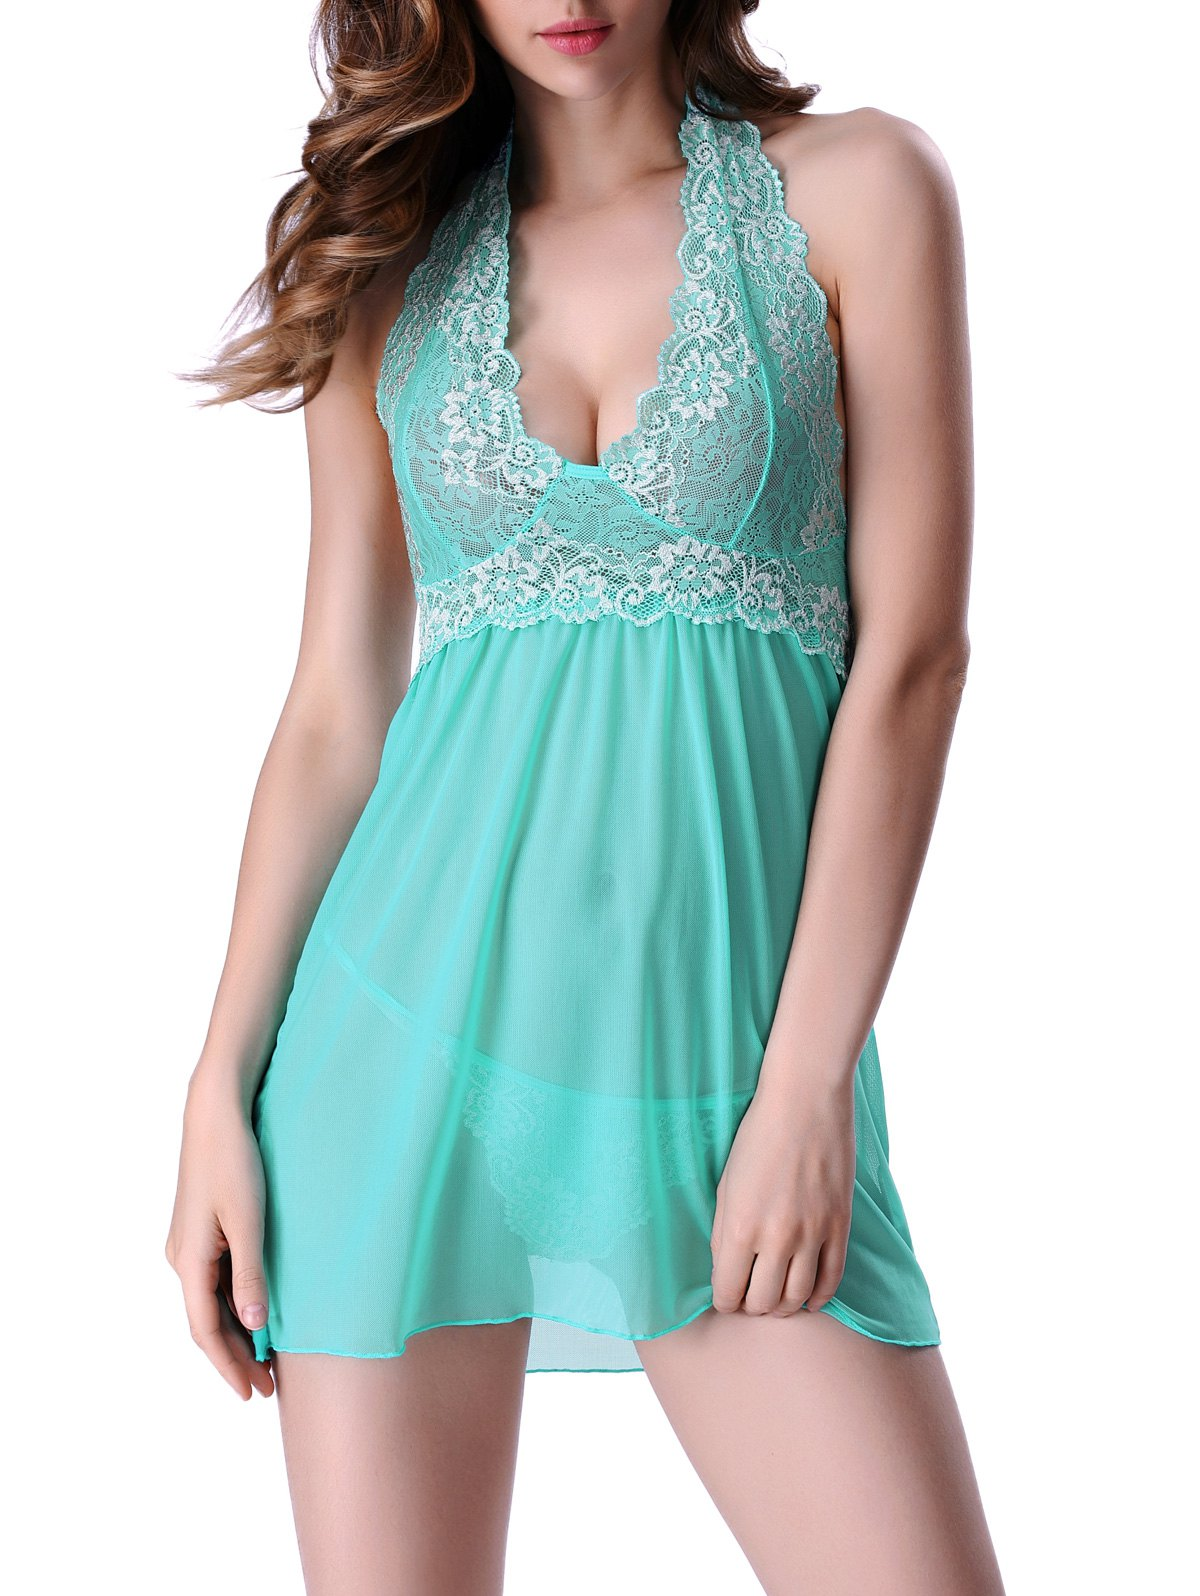 Best Alluring T-Back and Halter Backless Lace Spliced Sheer Babydoll For Women